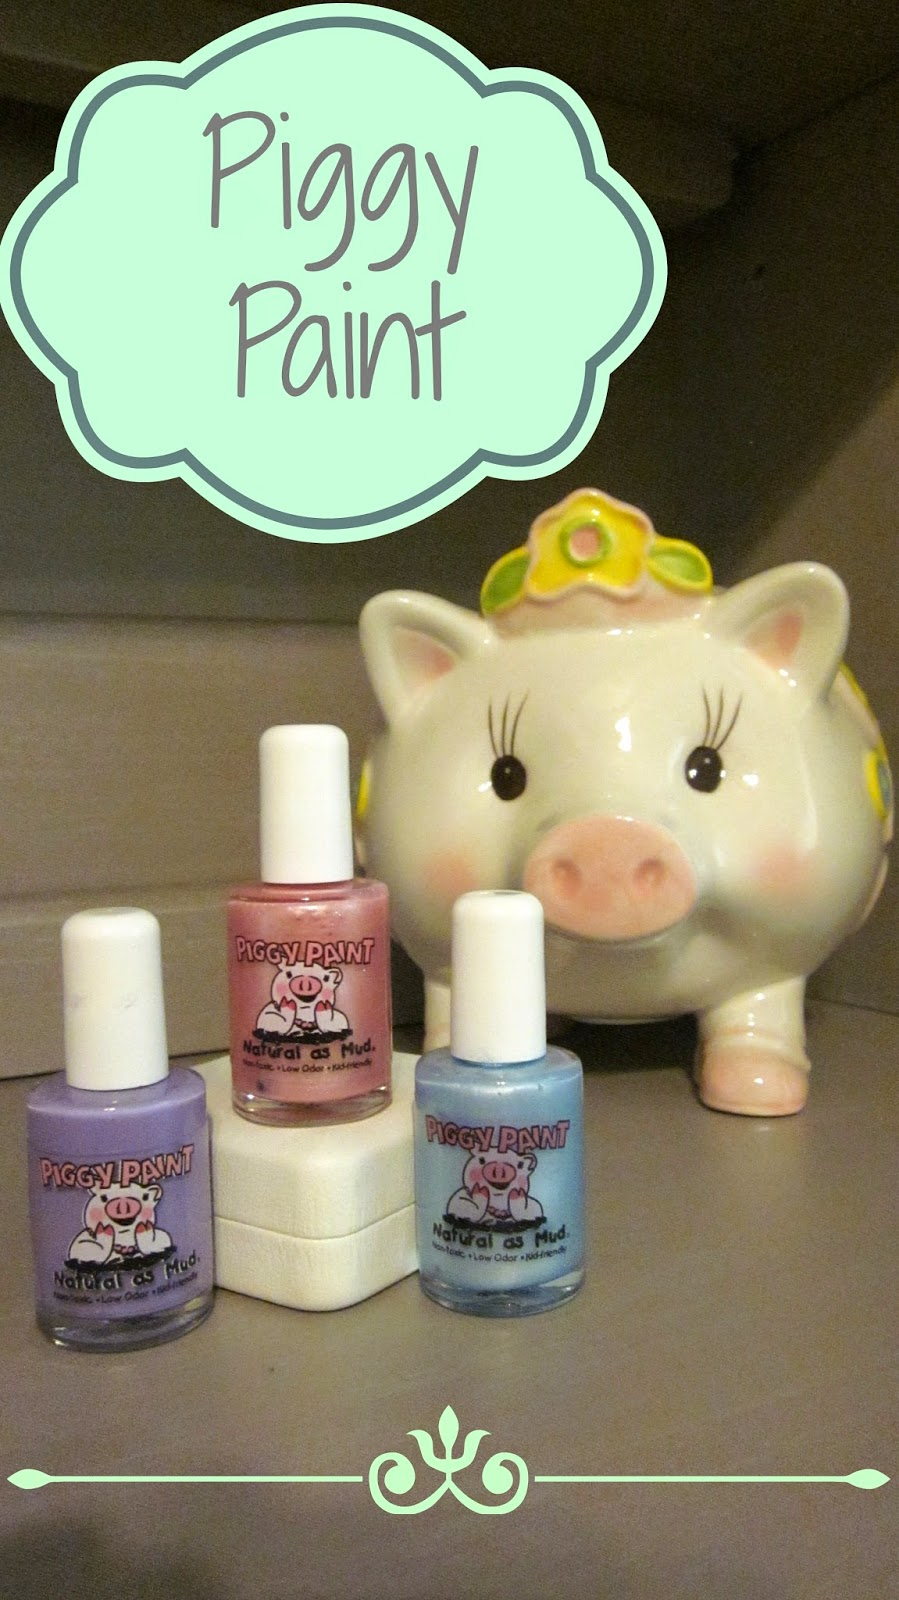 Piggy Paint, Kid nail polish, baby nail polish, safe kid nail polish